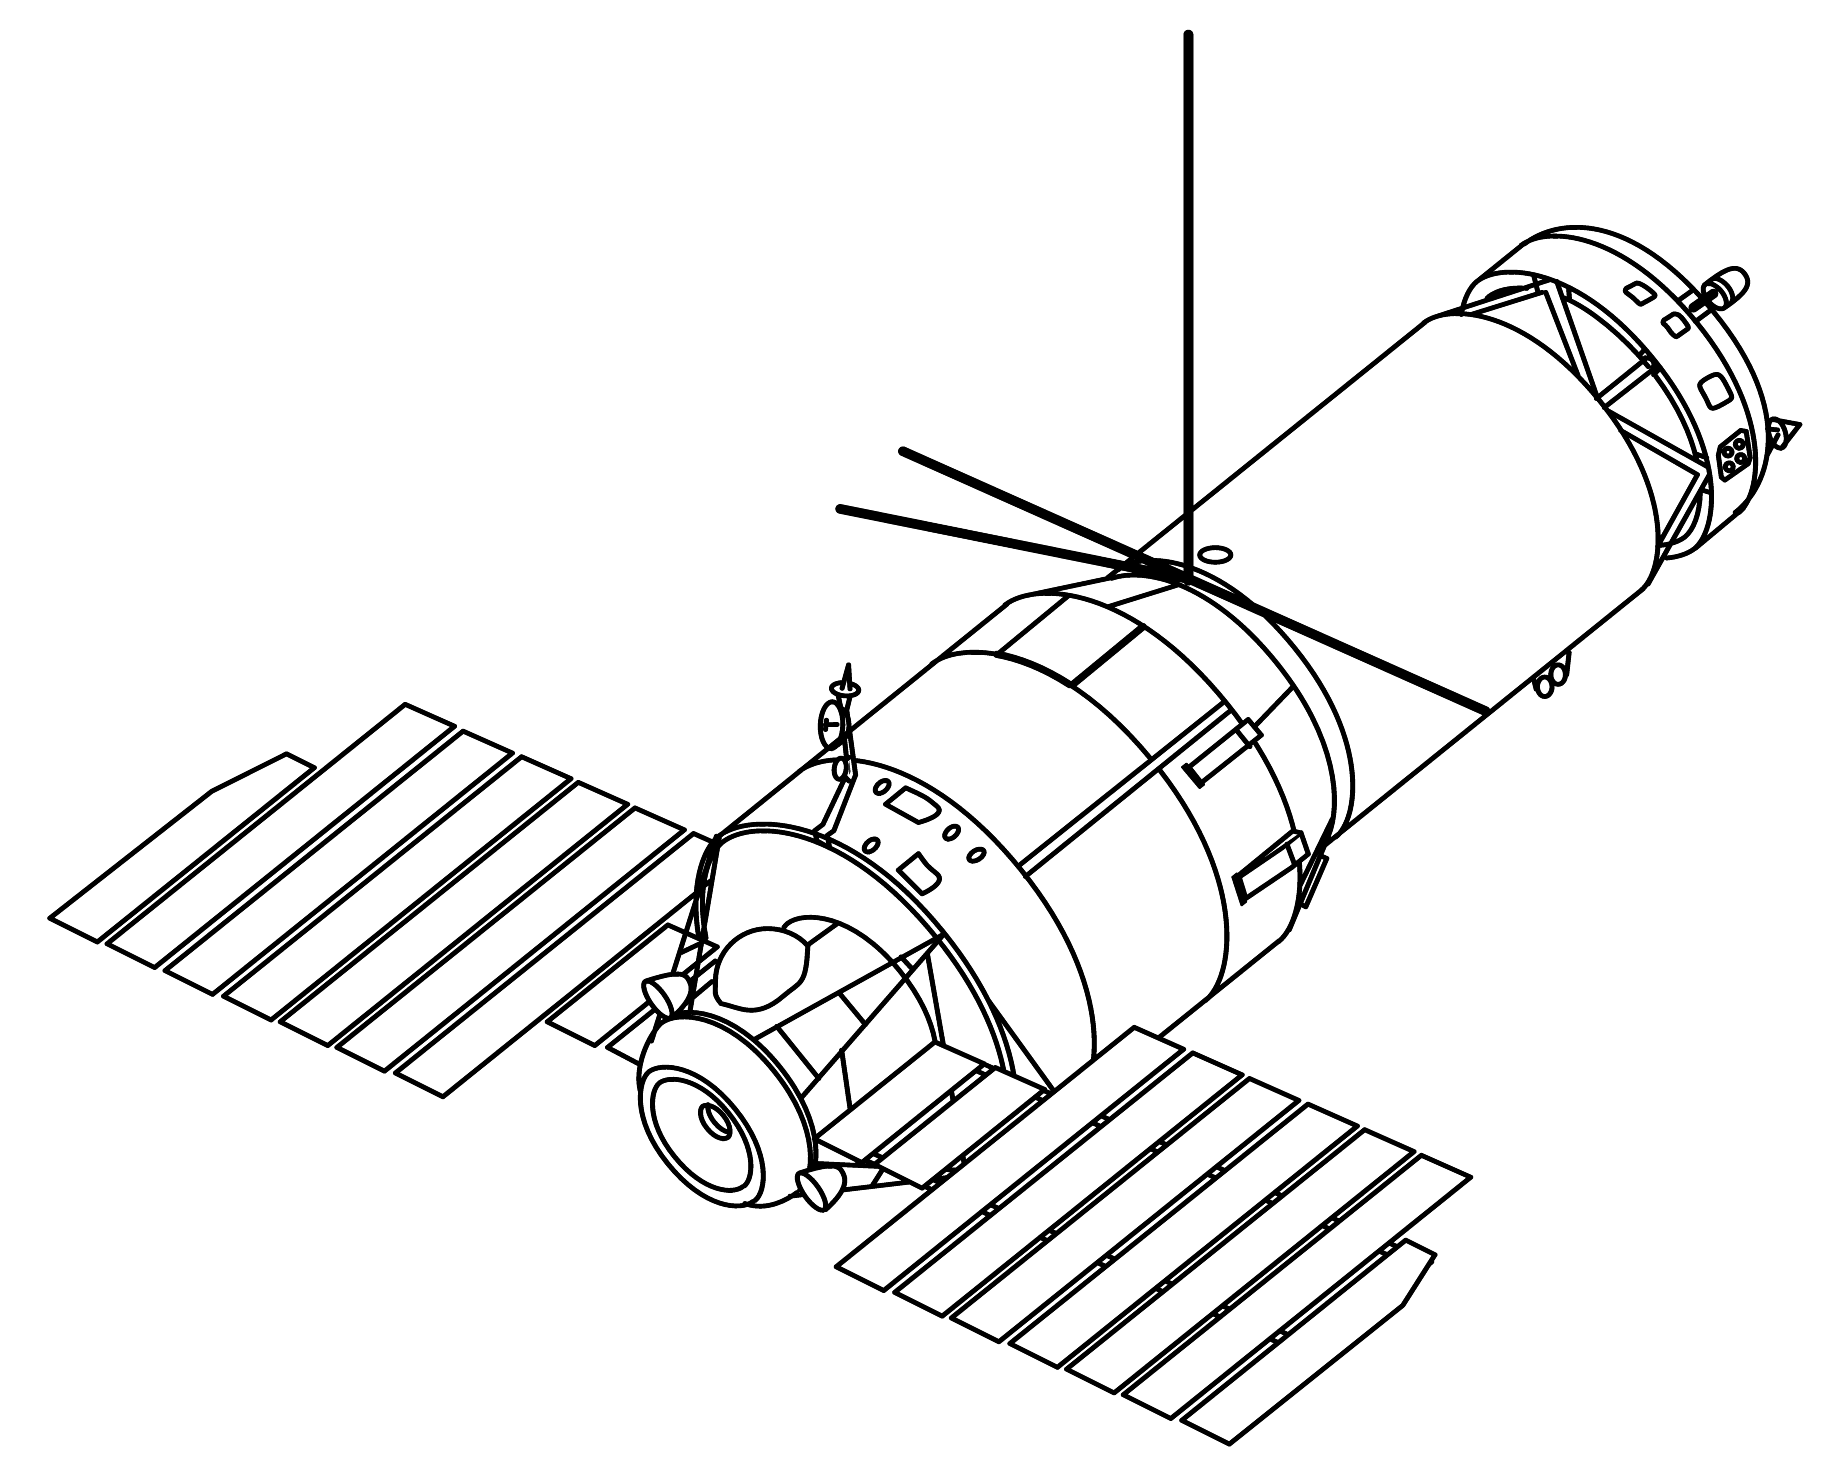 Easy Line Drawing Program : File salyut drawing wikimedia commons